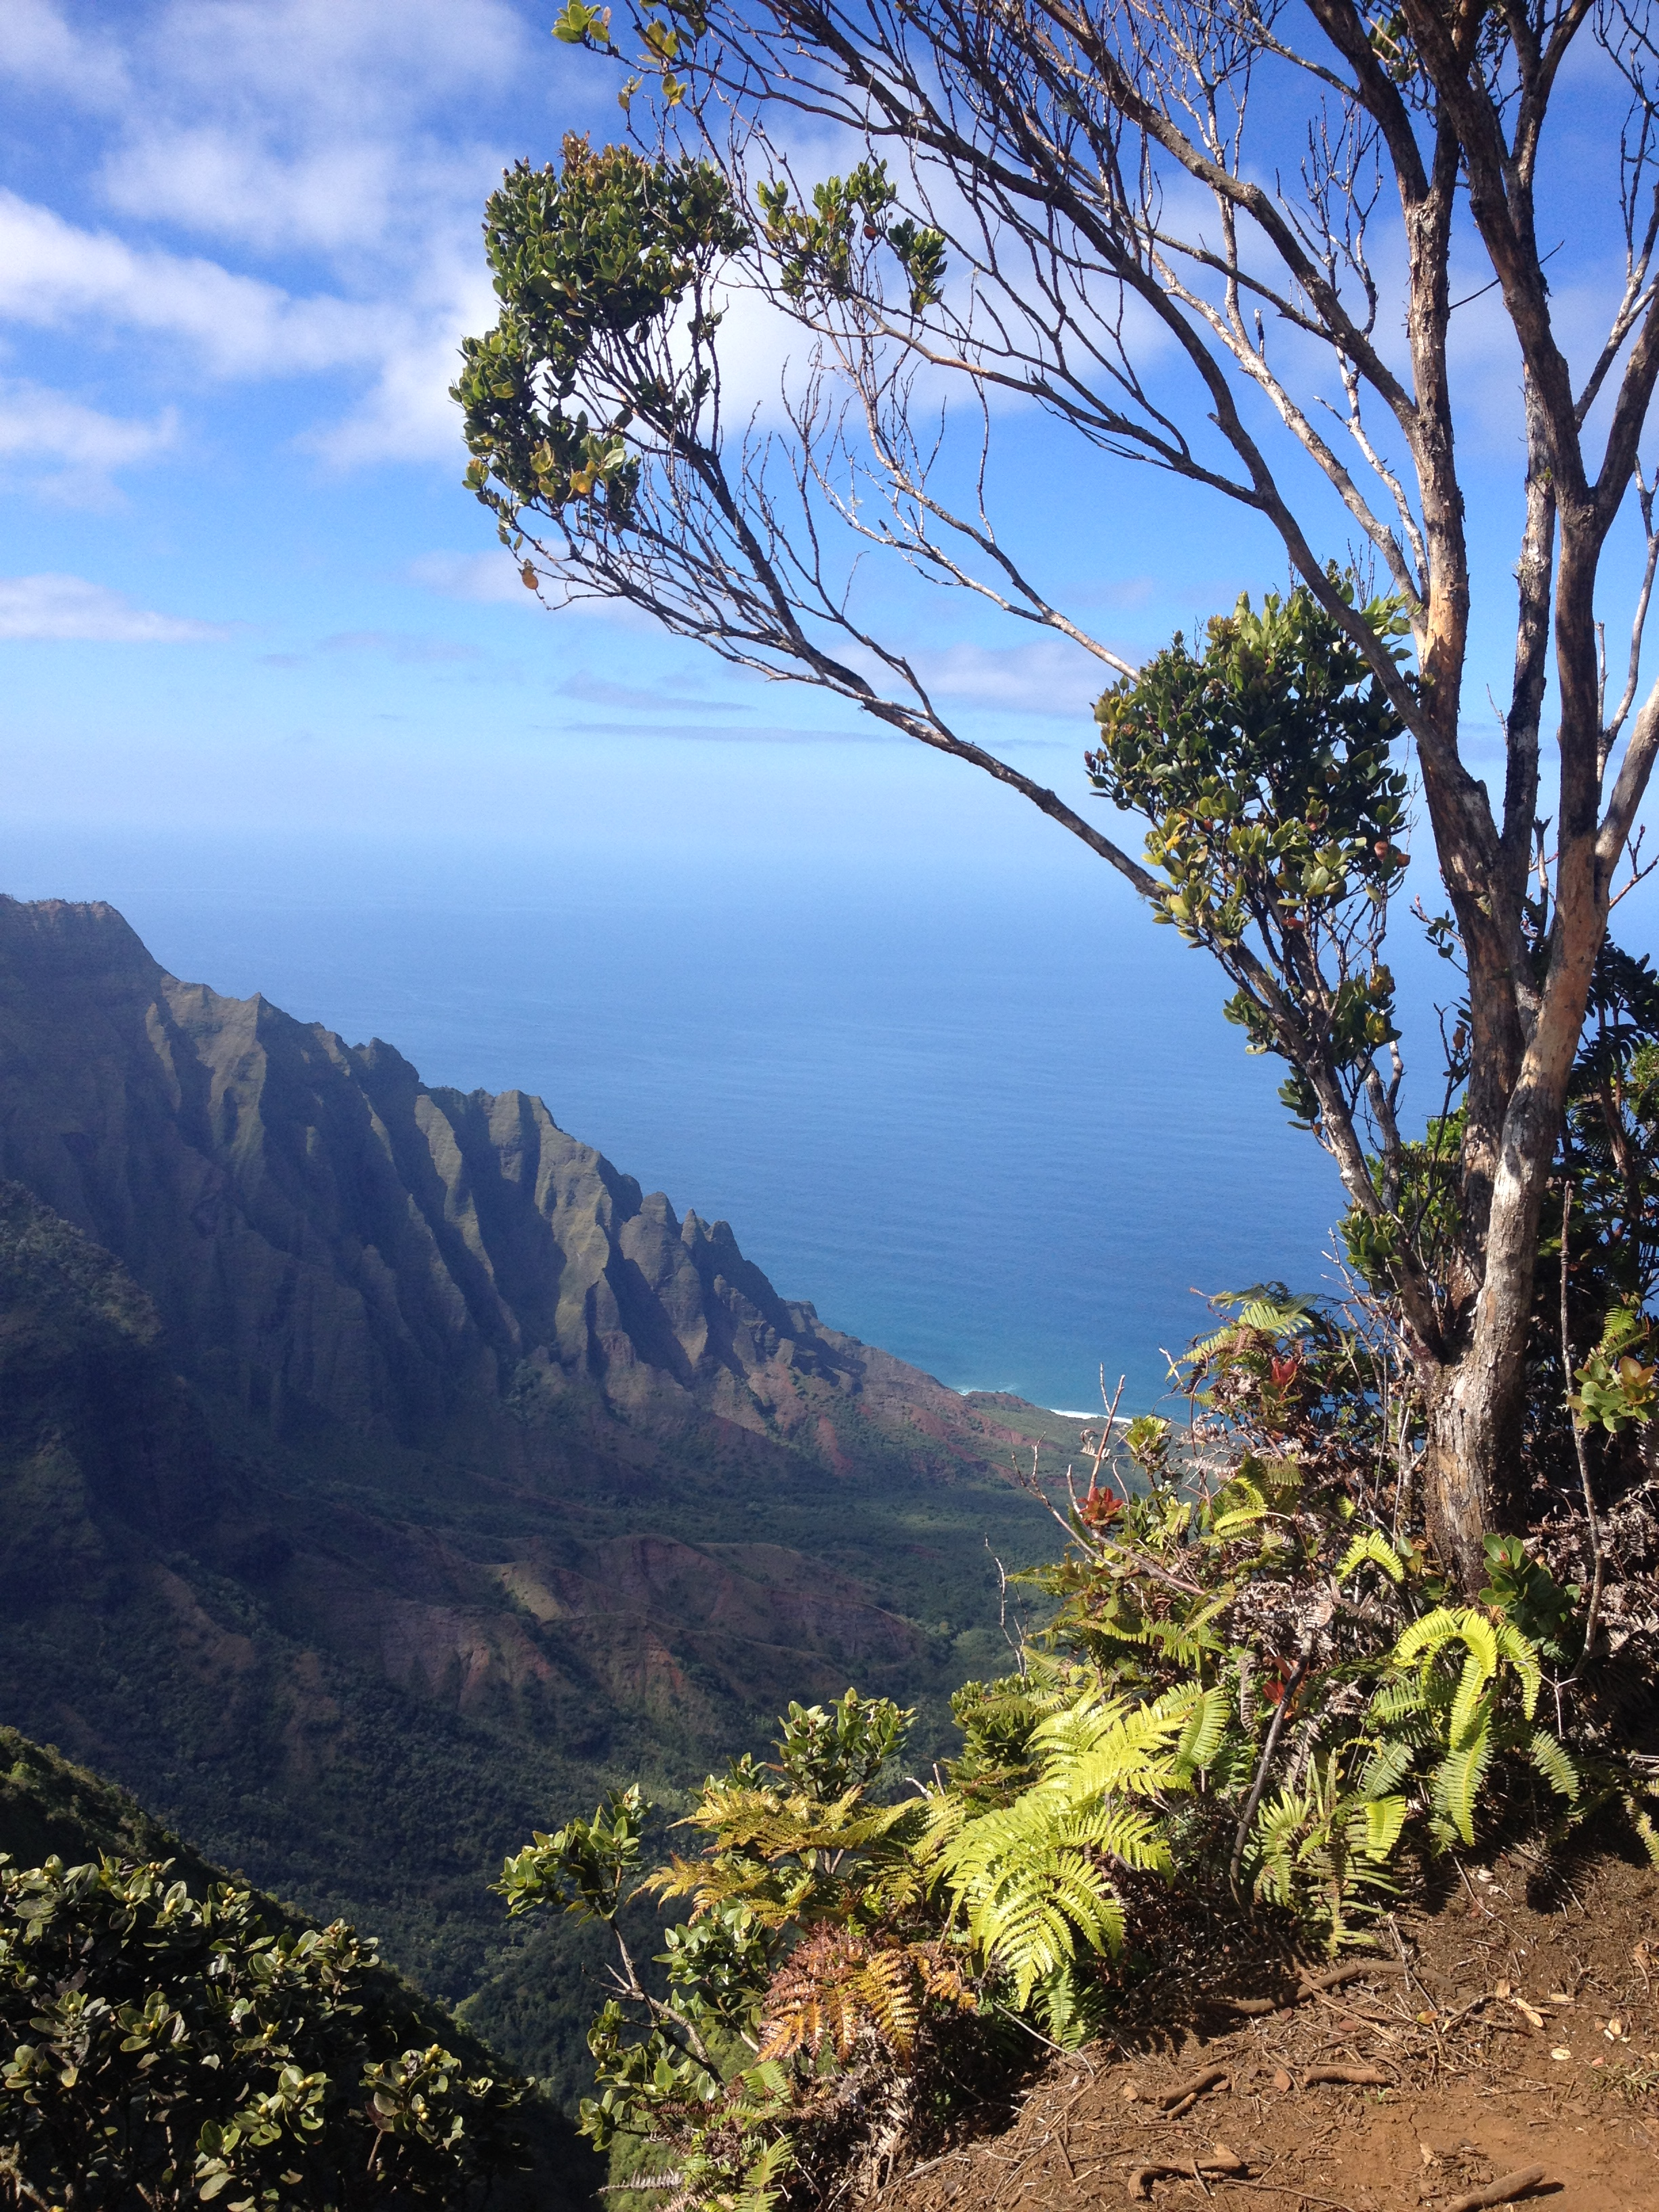 Kauai/Hawaii is always a good idea…